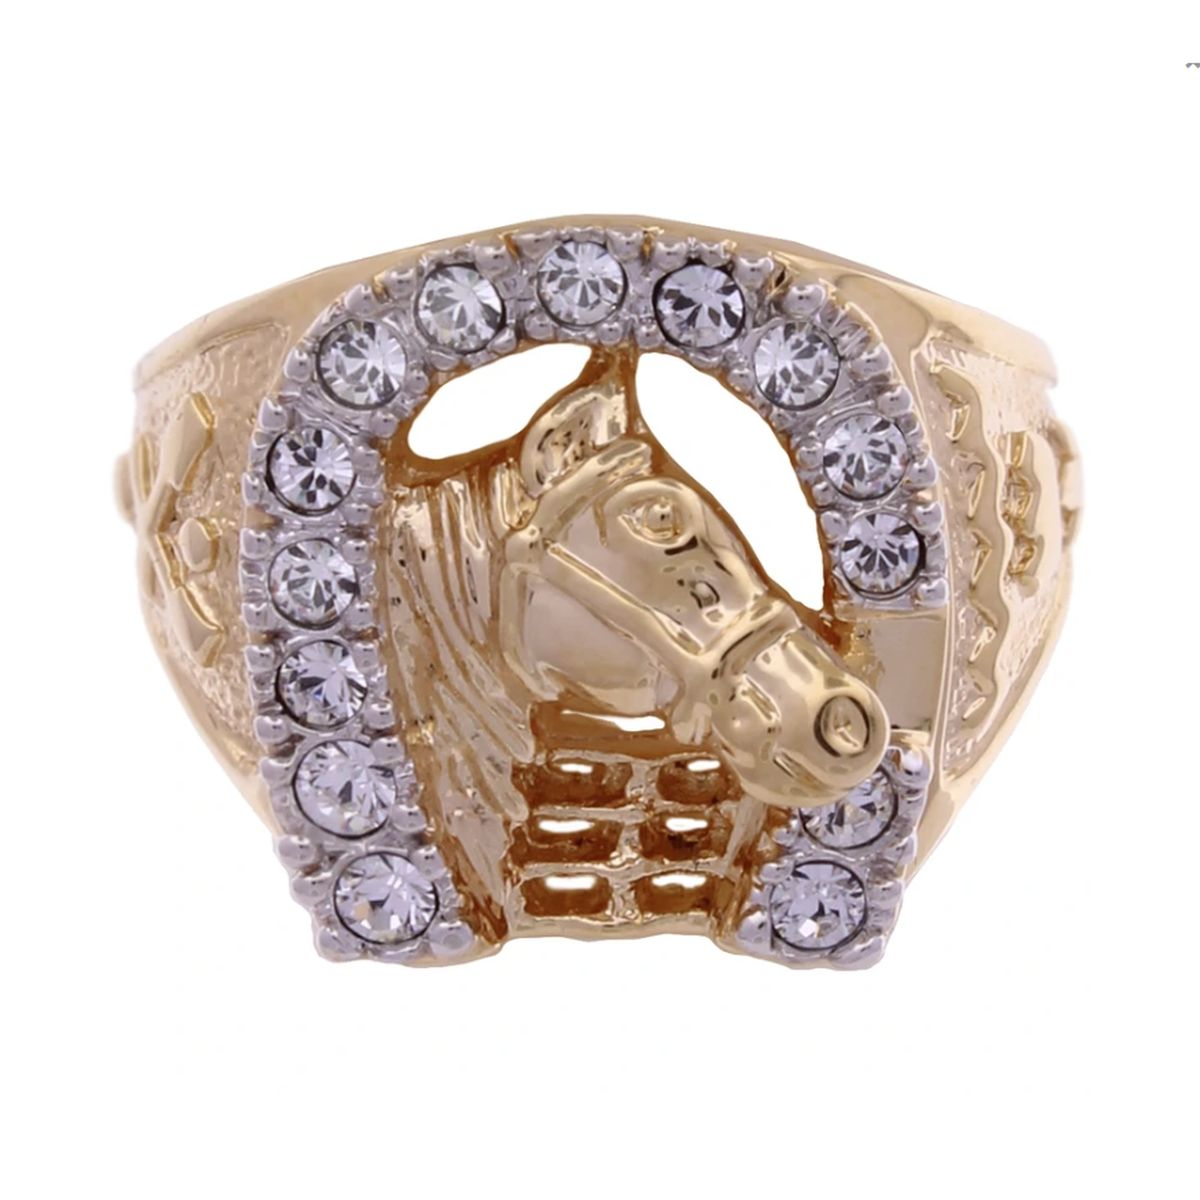 Lowell Hays 18K Gold Plated Horseshoe Ring